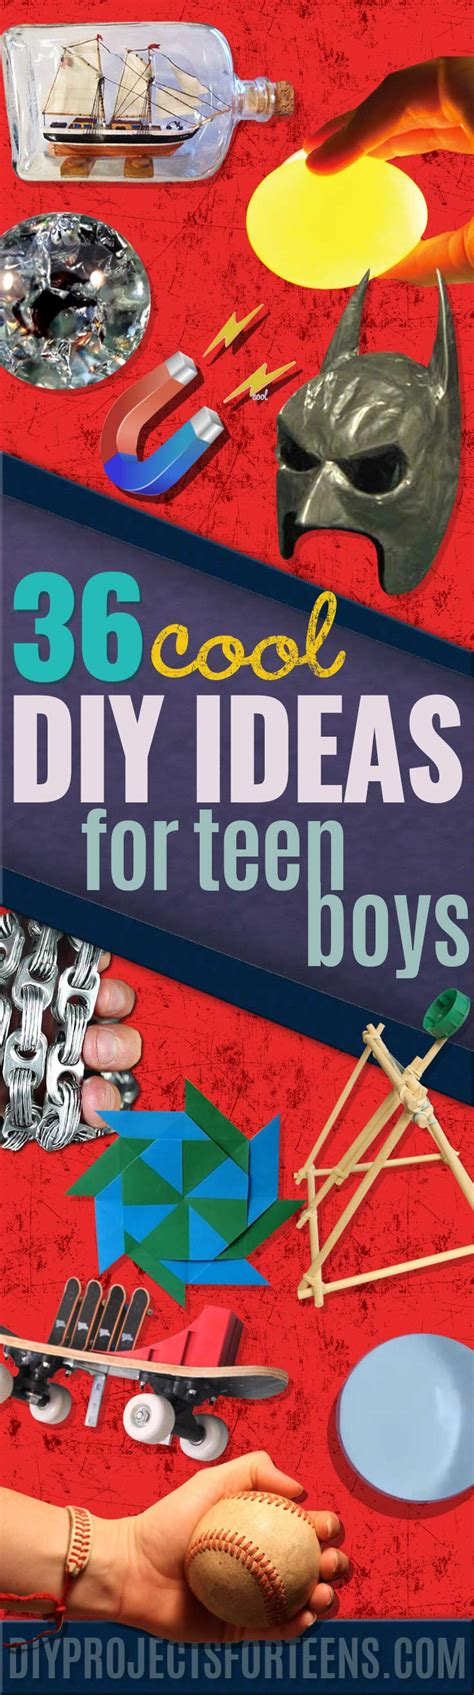 gadgets gear archives diy projects for teens